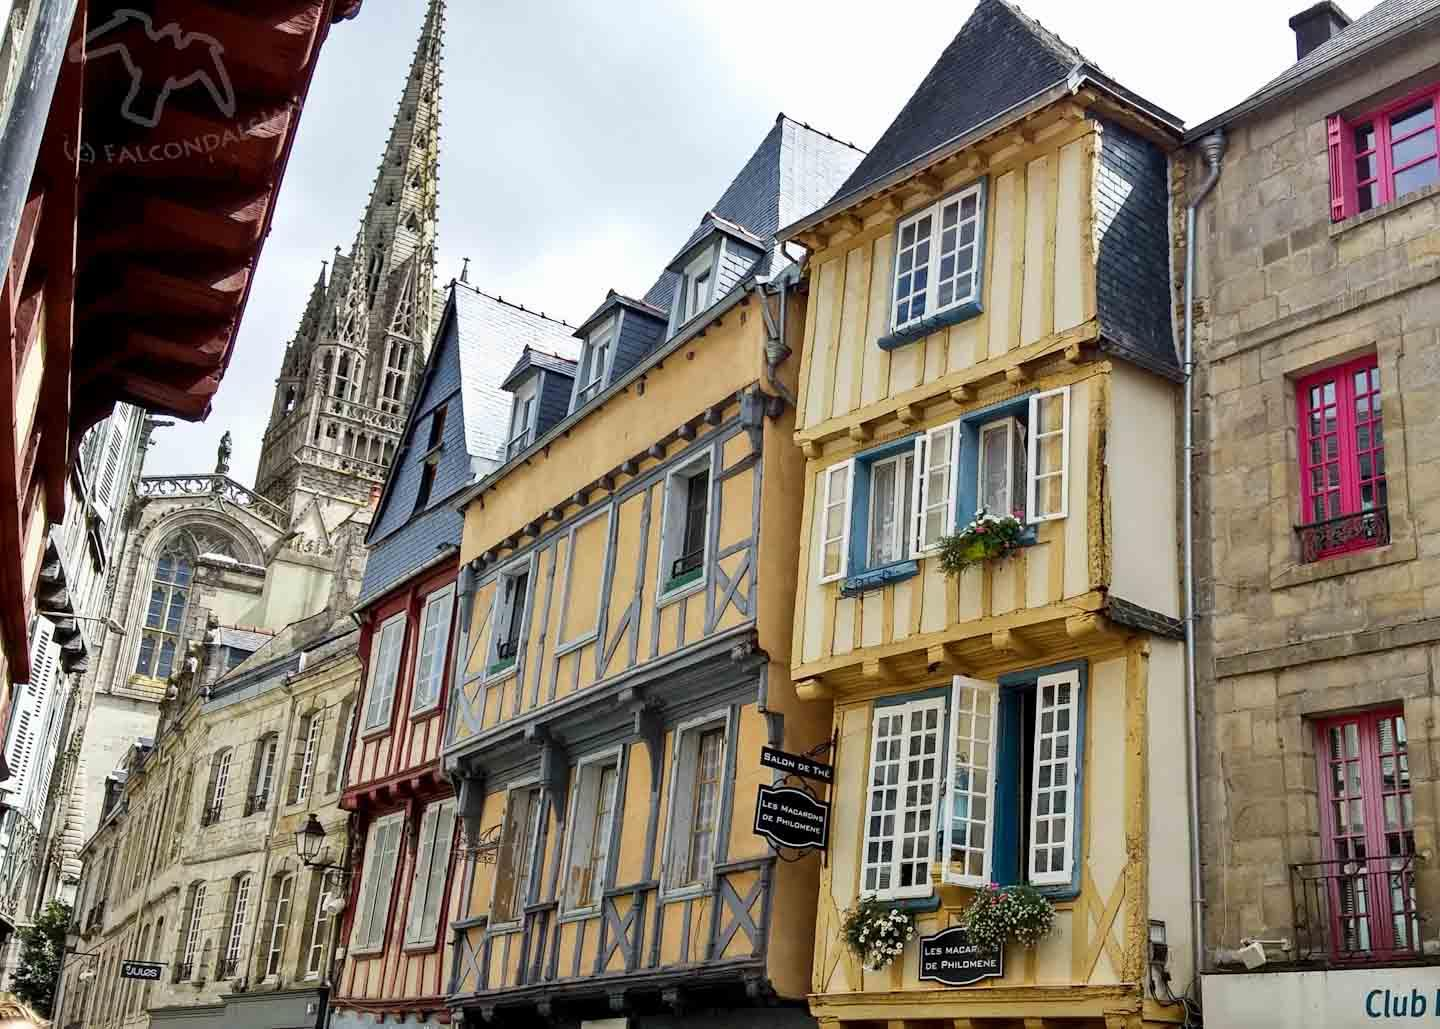 Pic of the week - Quimper old town on Falcondale Life blog. Charming Breton city with half-timbered buildings and cobbled streets. Linking with #MySundayPhoto